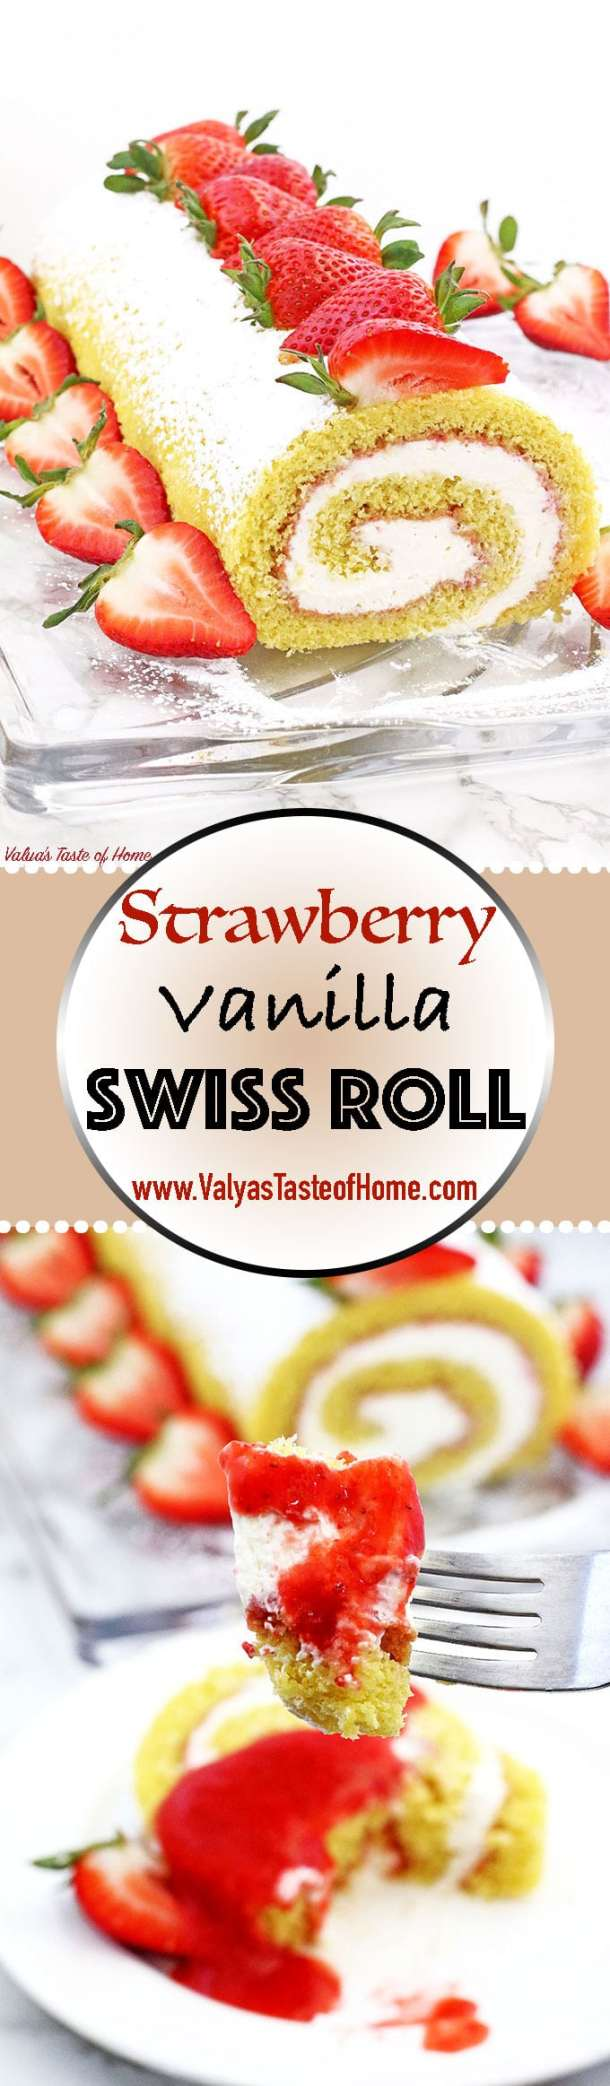 This Strawberry Vanilla Swiss Roll Recipe is the easiest and the quickest dessert you can ever make! Supper soft sponge cake topped with amazingly tasty (no cook) strawberry sauce, filled with super soft and fluffy cream, dusted with confectioners' sugar and topped with loads of fresh strawberries. | www.valyastasteofhome.com